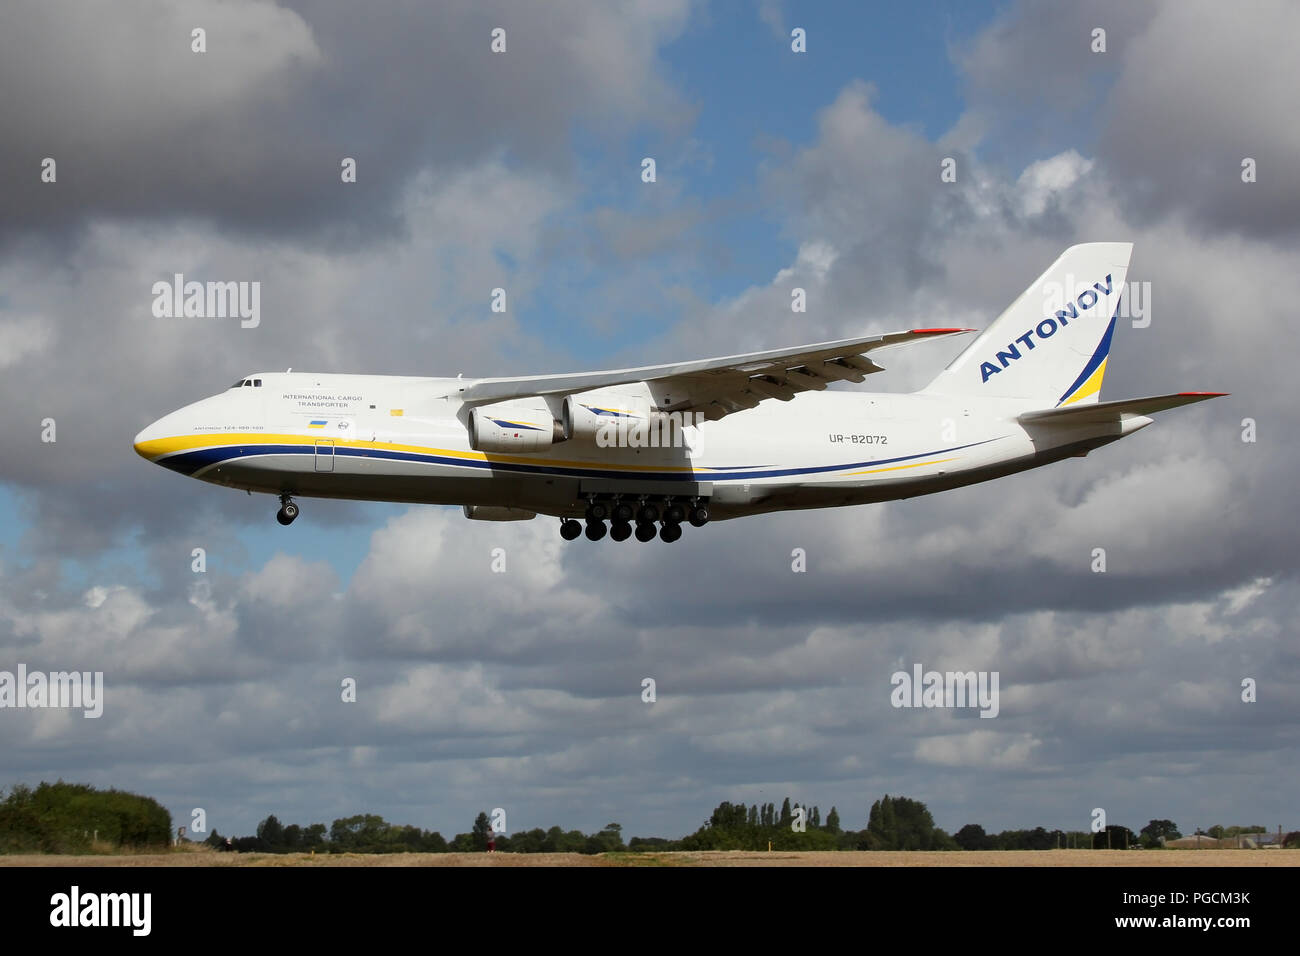 Antonov Airlines An-124 on approach into Wattisham Airfield, Suffolk. This large cargo aircraft is returning AAC Apaches helicopters from the USA. - Stock Image